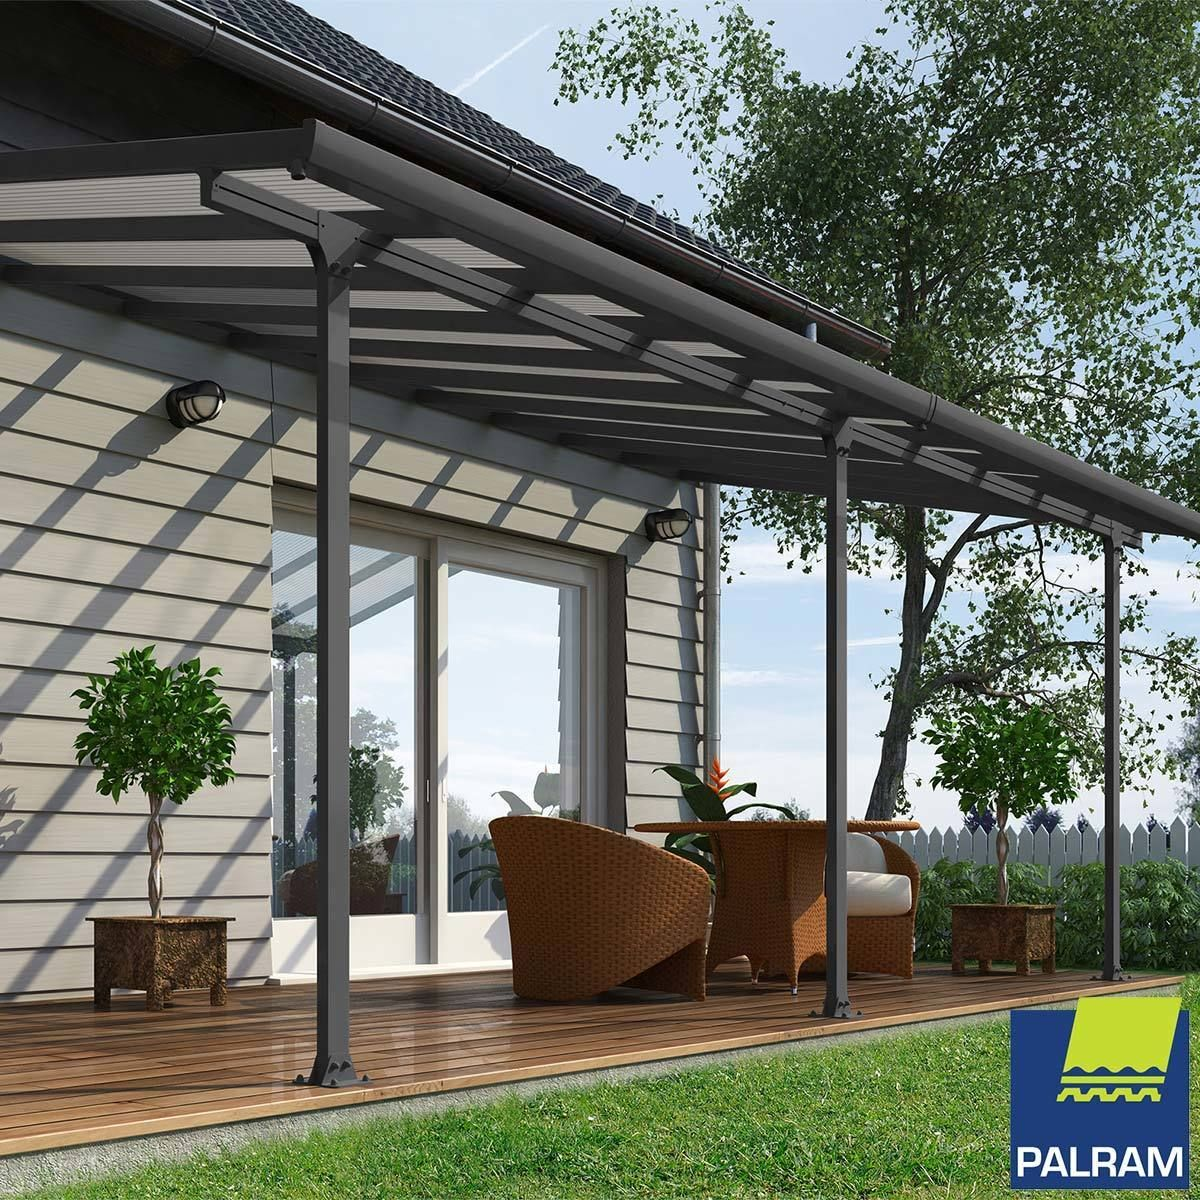 Palram Feria 3 Veranda Patio Cover In Grey 3 X 6 10m Garden